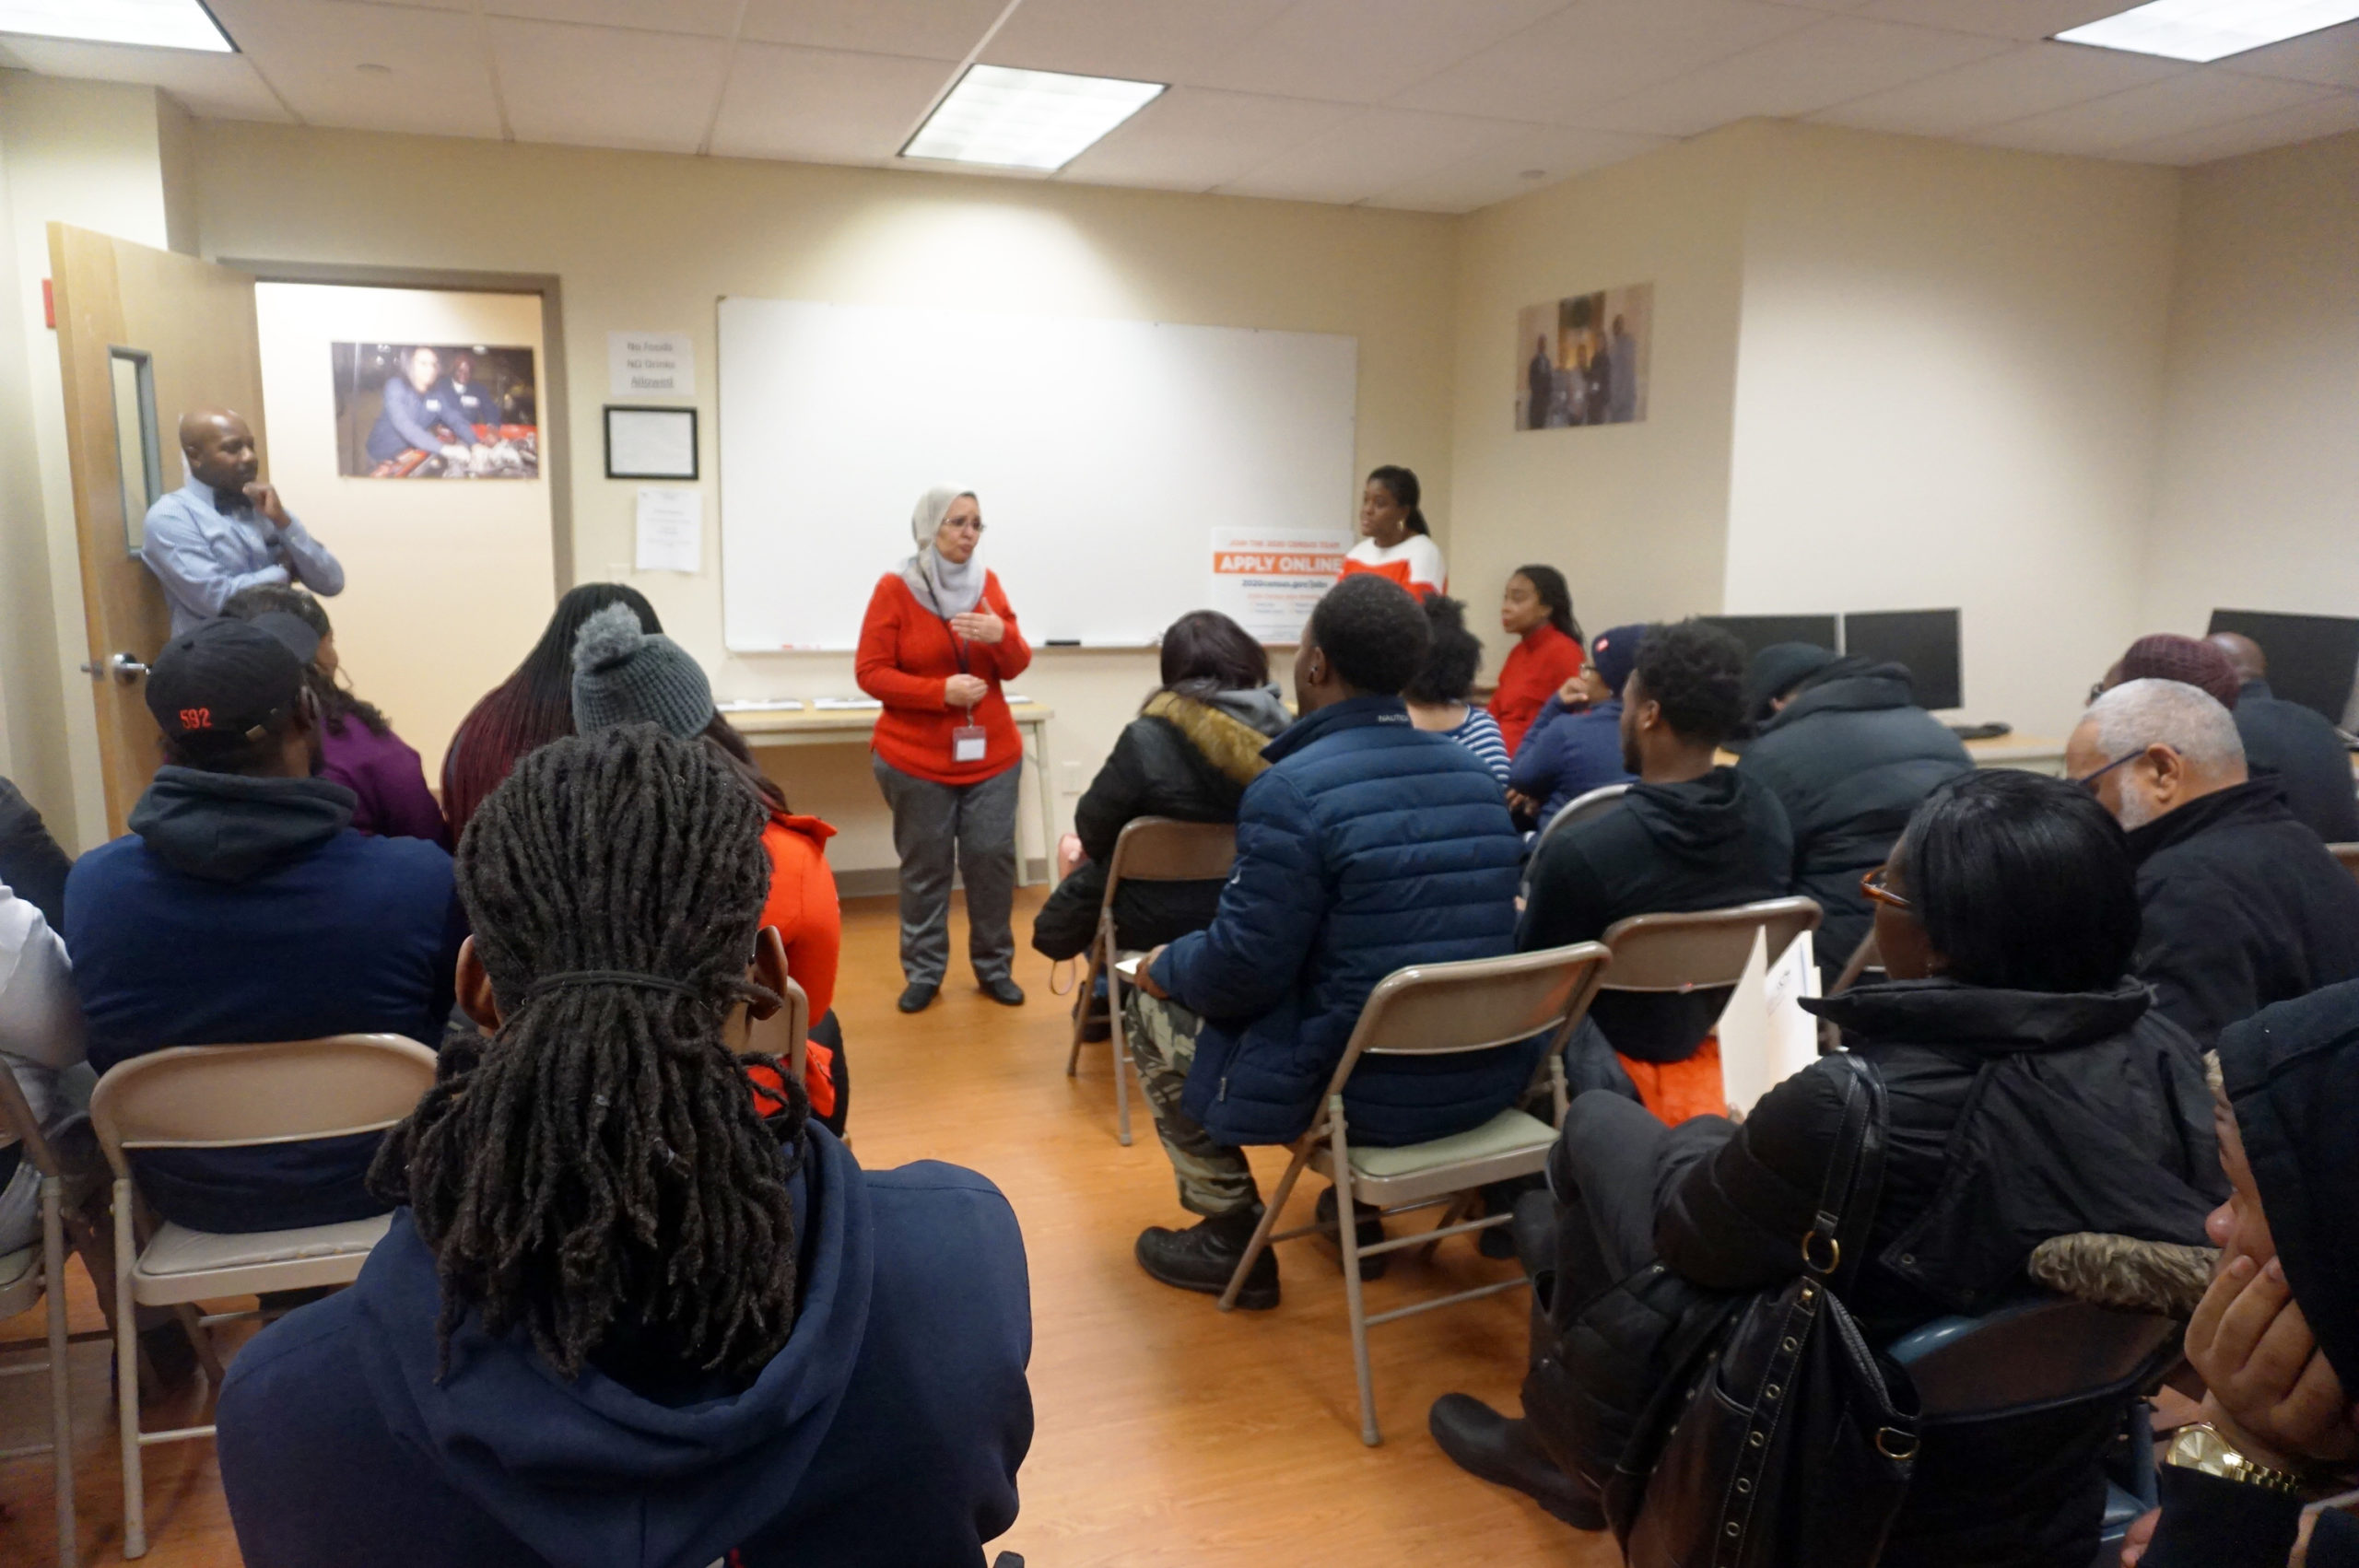 NCCTI Hosts Open House for Prospective Students